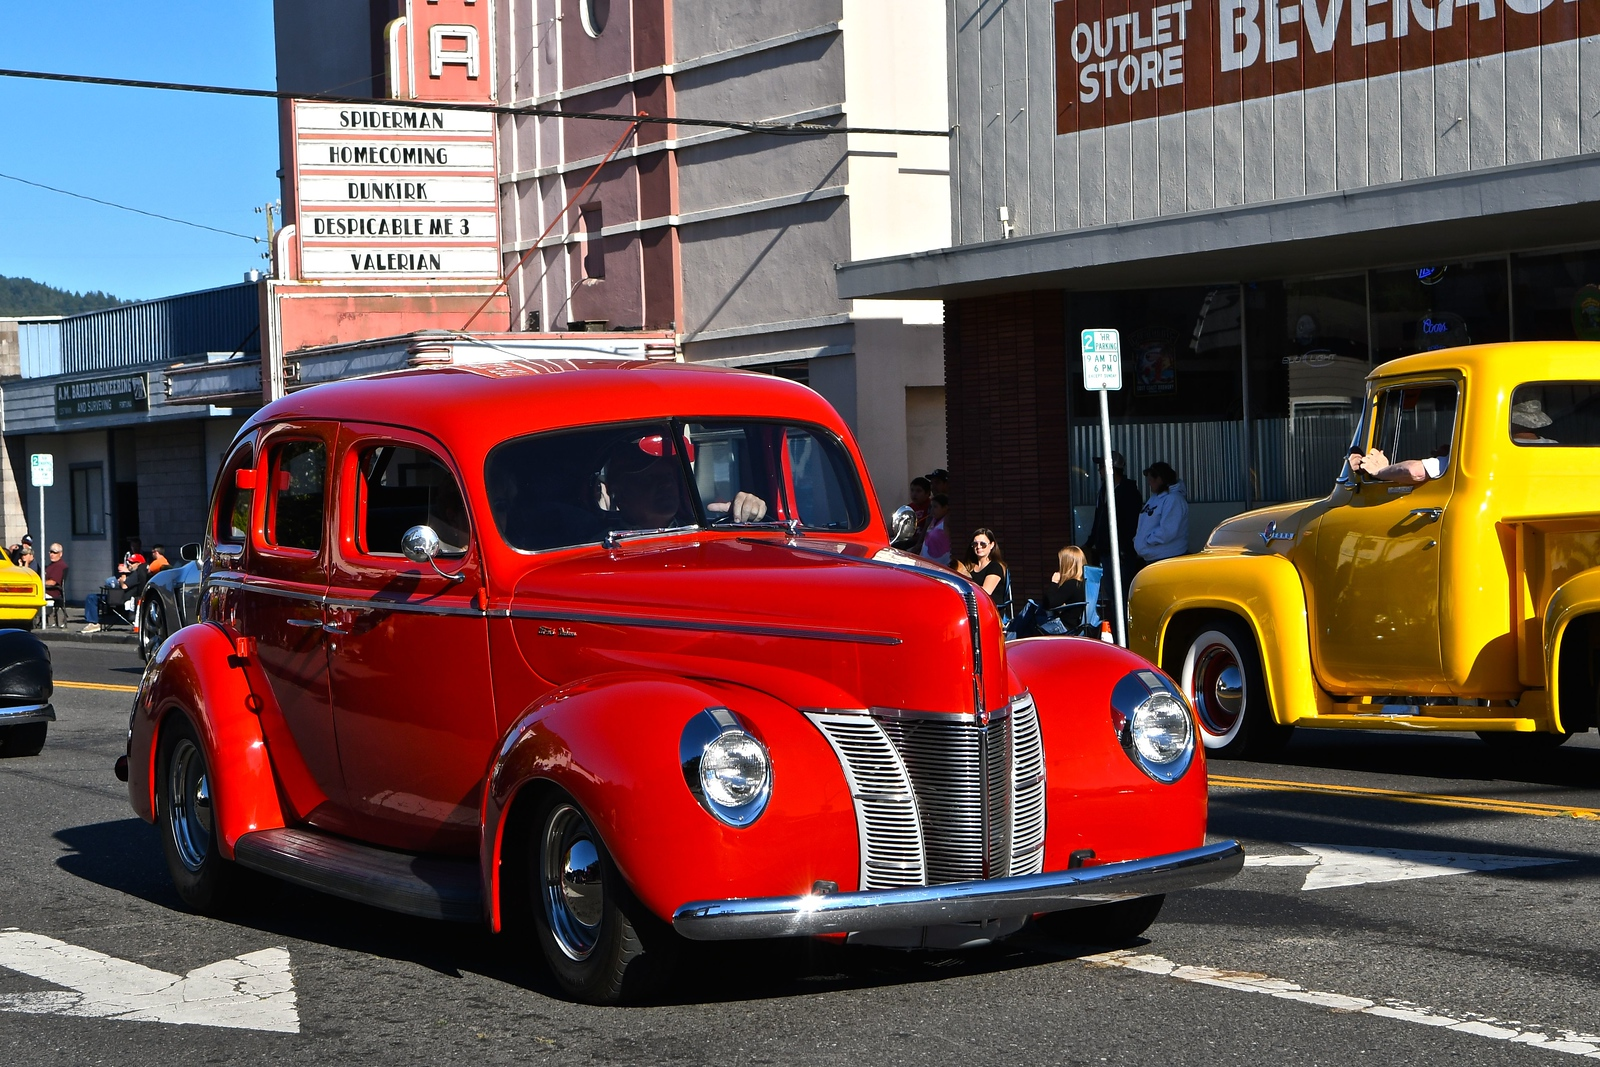 Vintage and classic vehicles went north and south on Main Street fortuna Friday night. José Quezada — For the Times-Standard